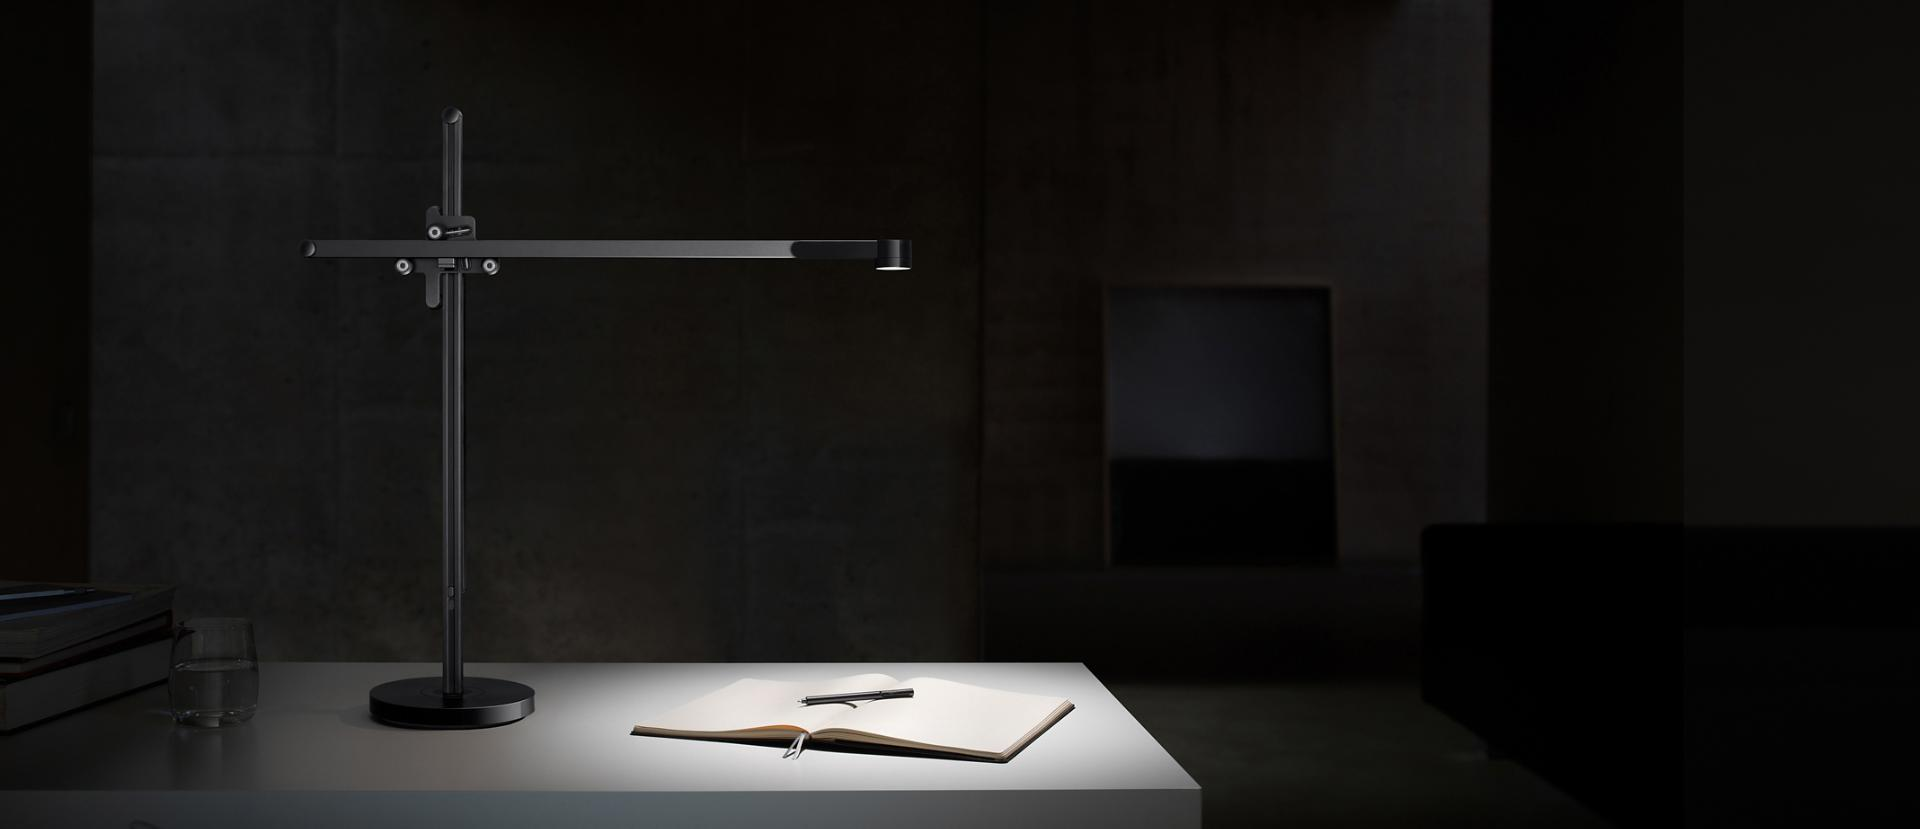 Powerful light from a Dyson CSYS task light shining on a desk